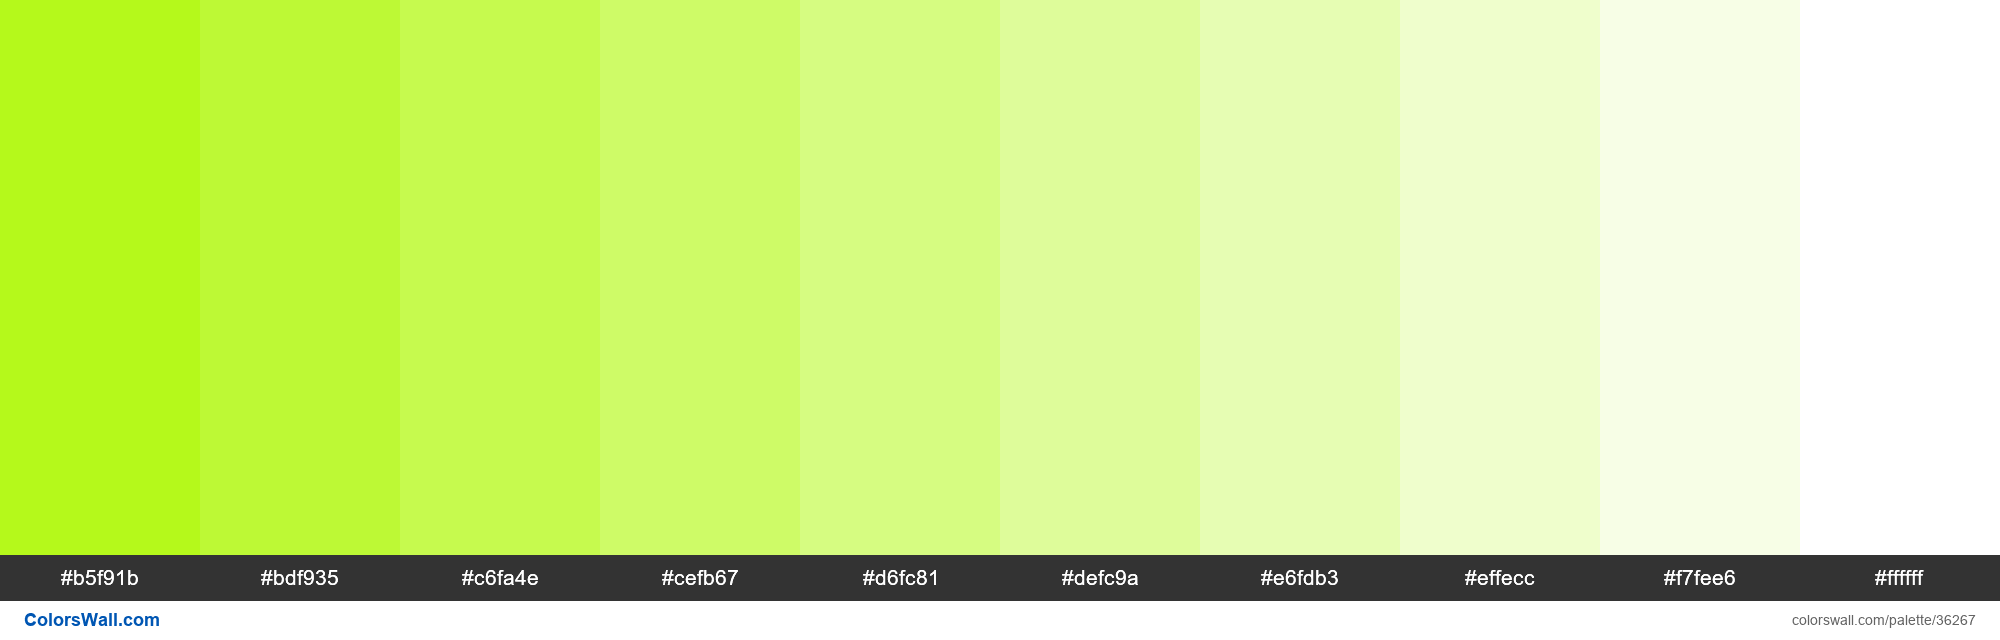 Tints XKCD Color lemon green #adf802 hex - #36267